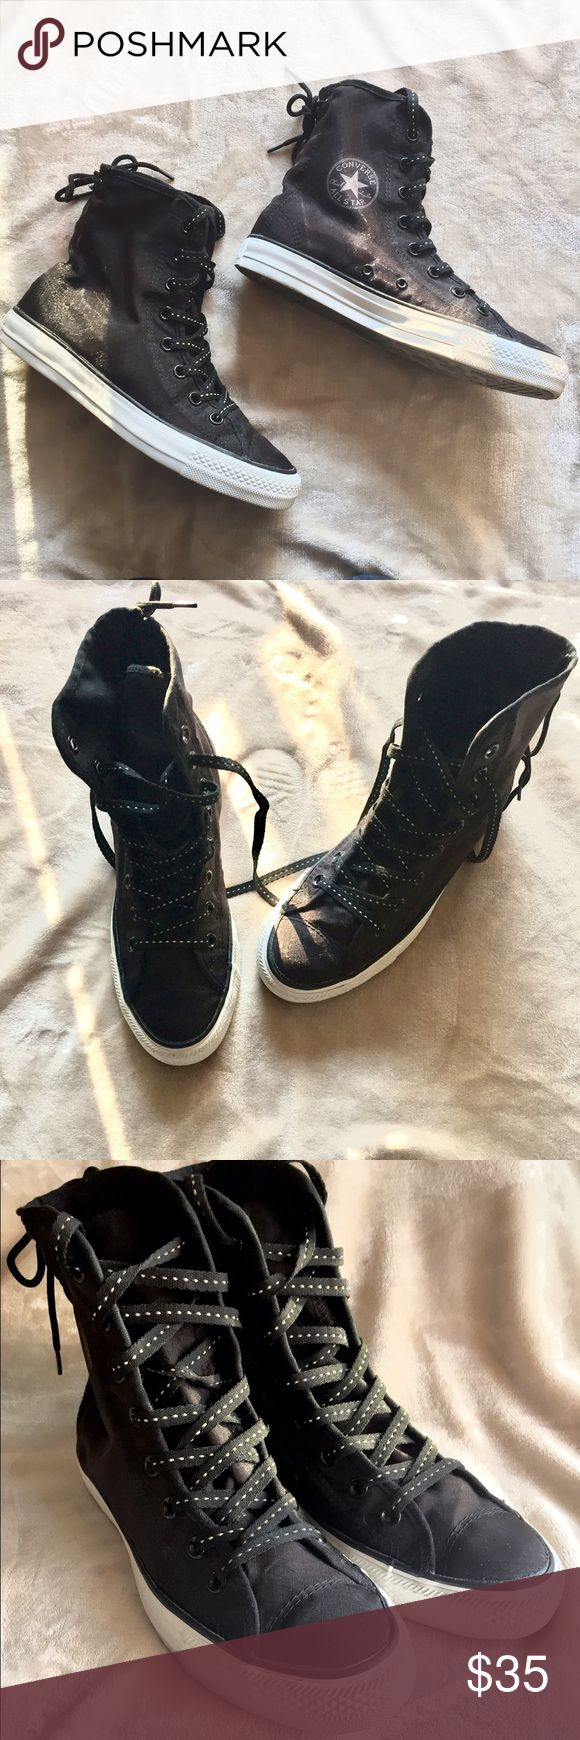 Nylon Black Chuck Taylor's All black High Top converse in a unique nylon material. Comes with black shoestrings with white dots and an all white sole. In excellent condition. 🚫No Trades 🚫No PayPal! For all offers please use offer feature ONLY! Thank you! Converse Shoes Sneakers